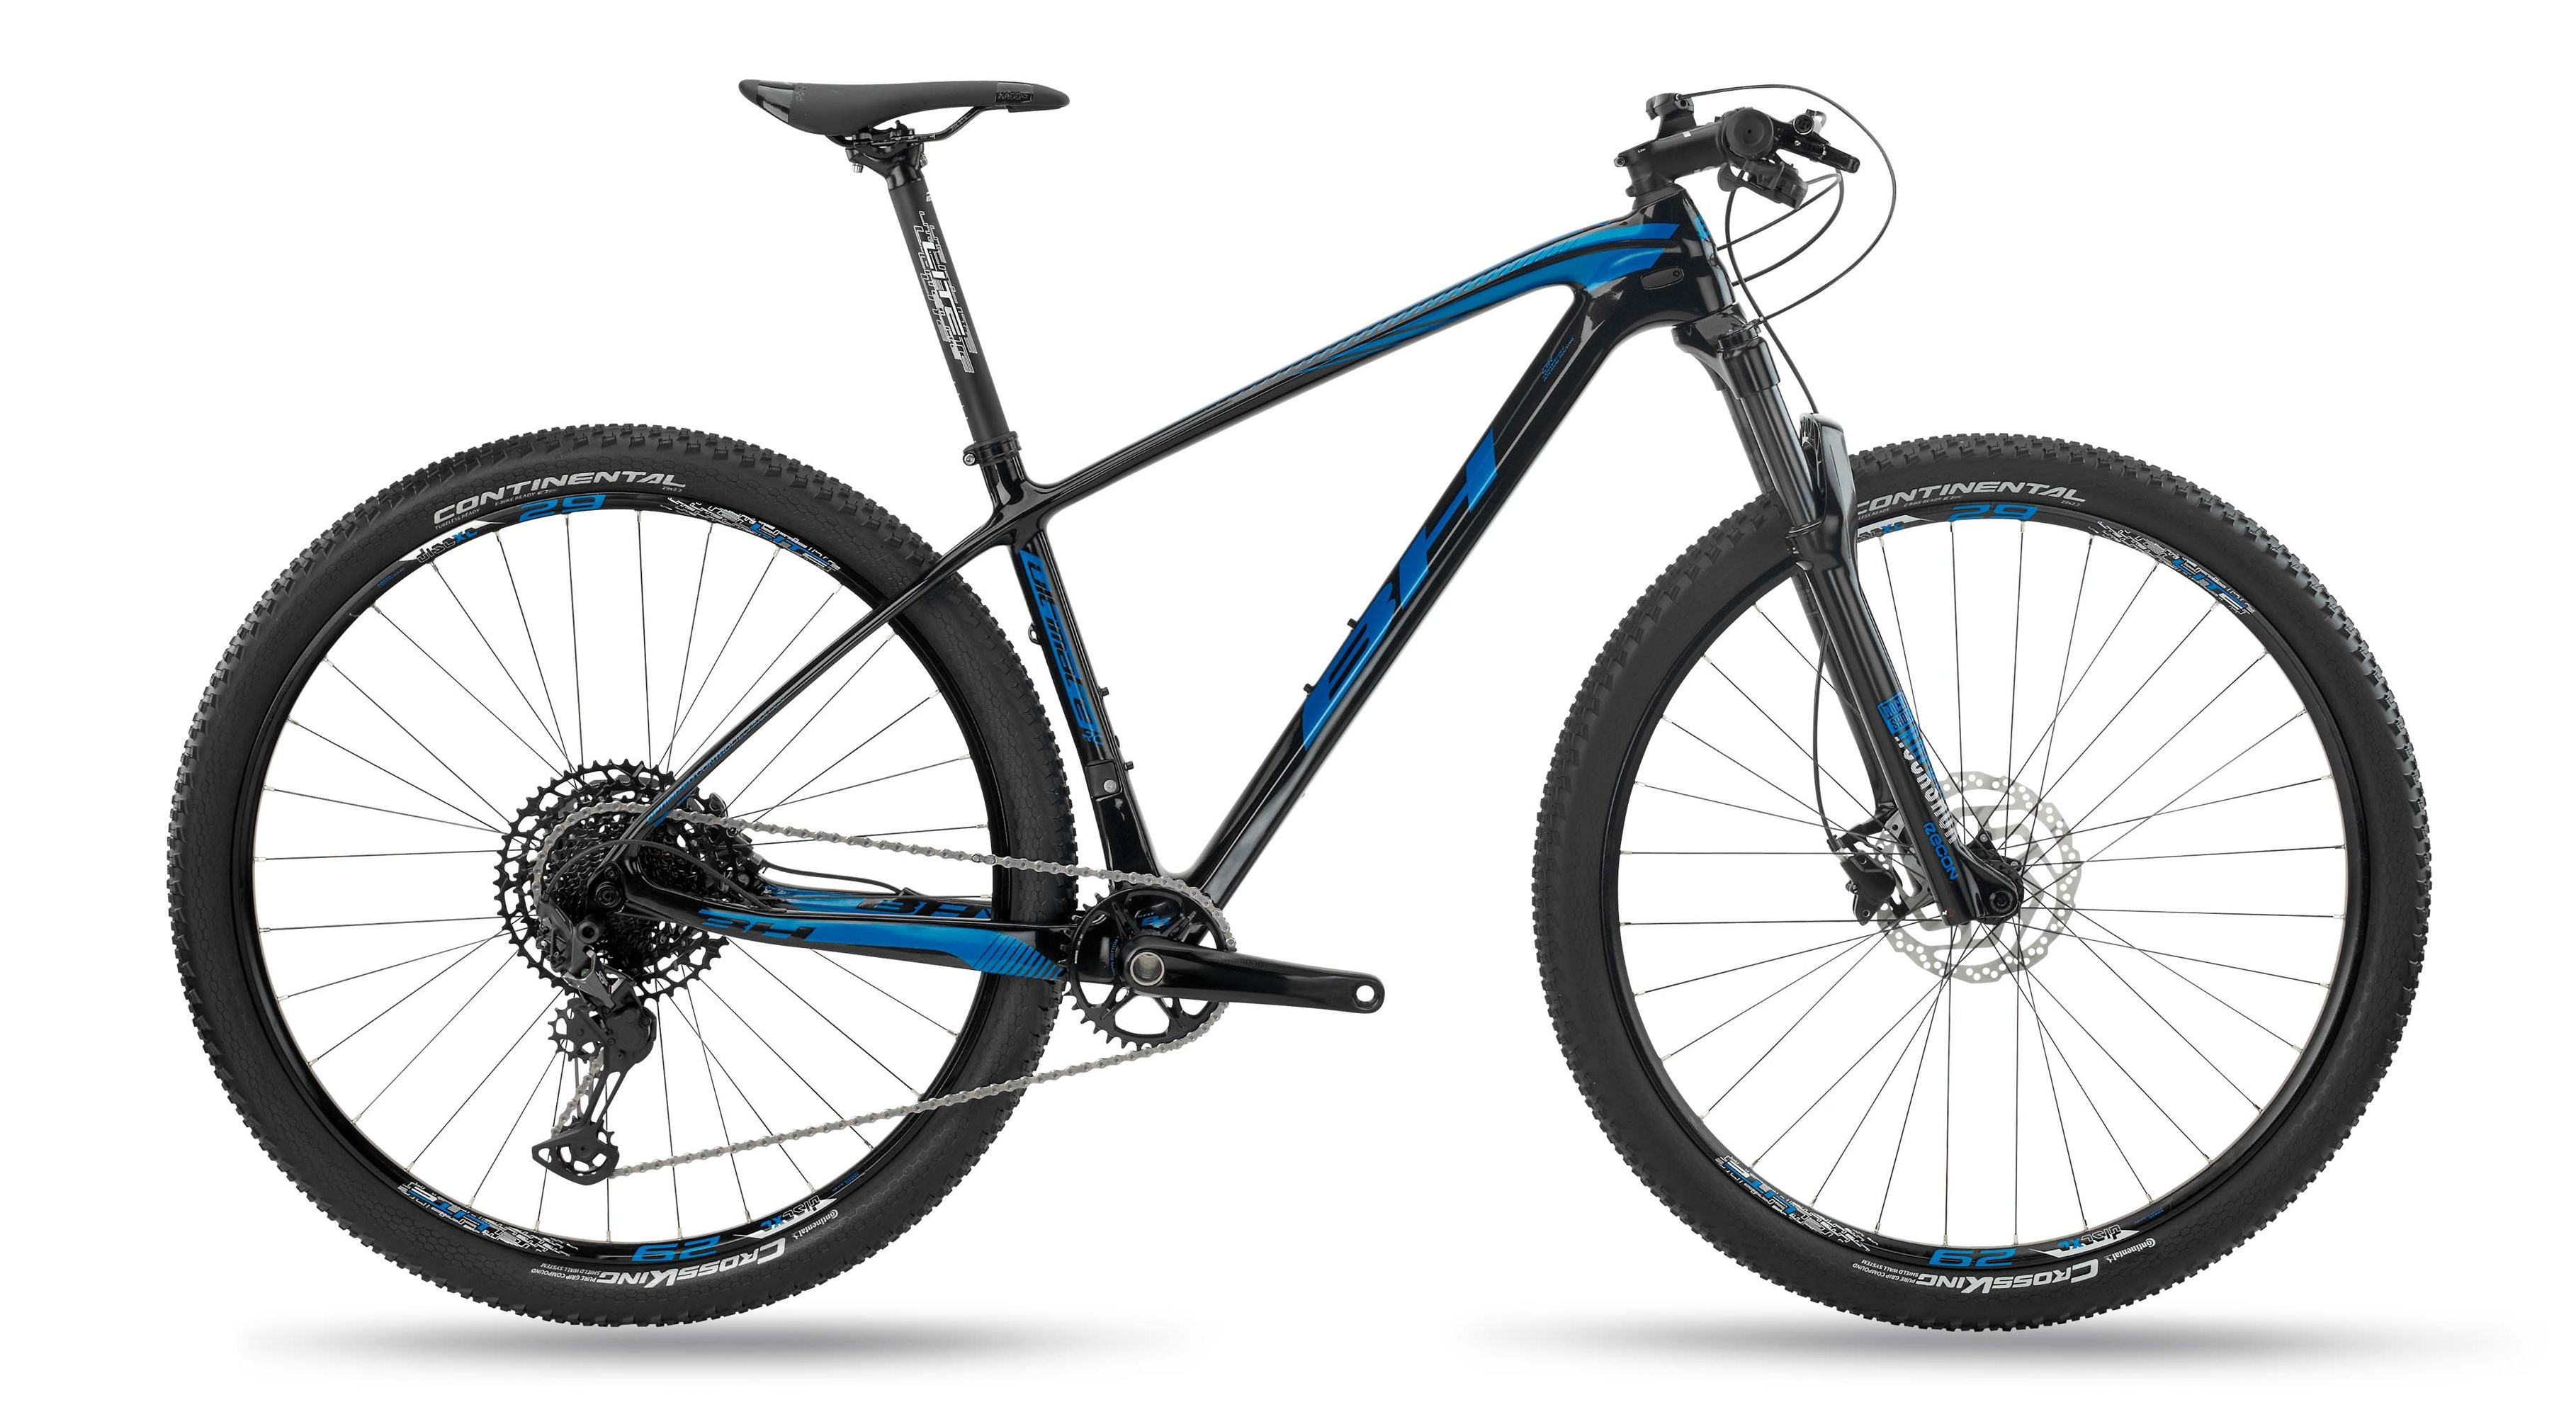 bicicleta-bh-ultimate-rc-70-a7090